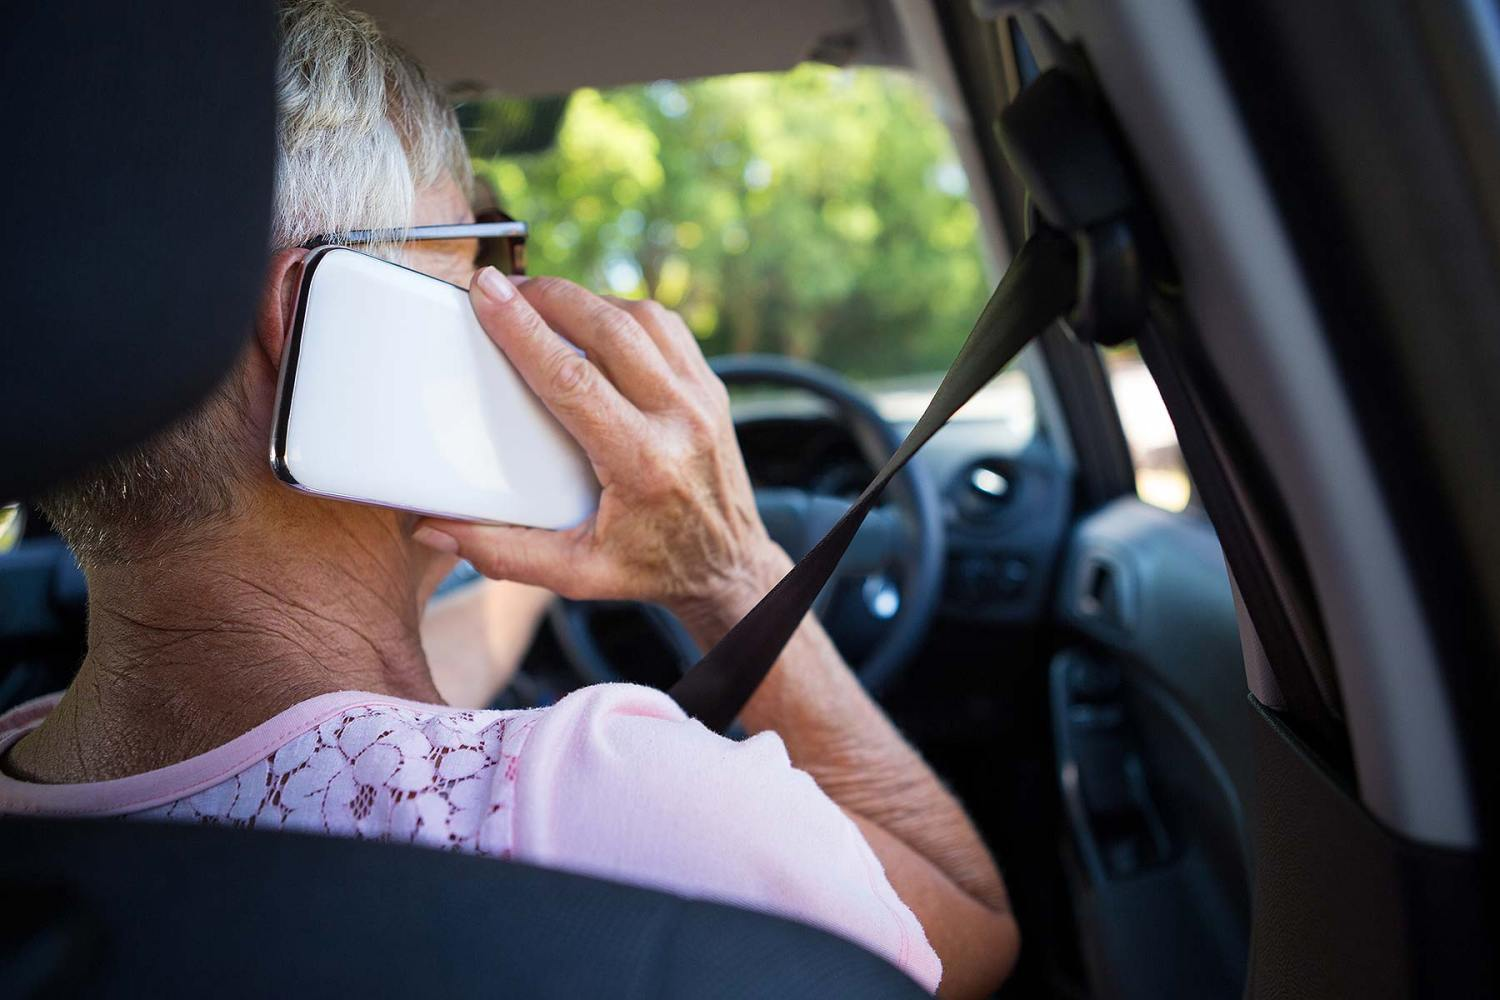 Illegal mobile phone use while driving